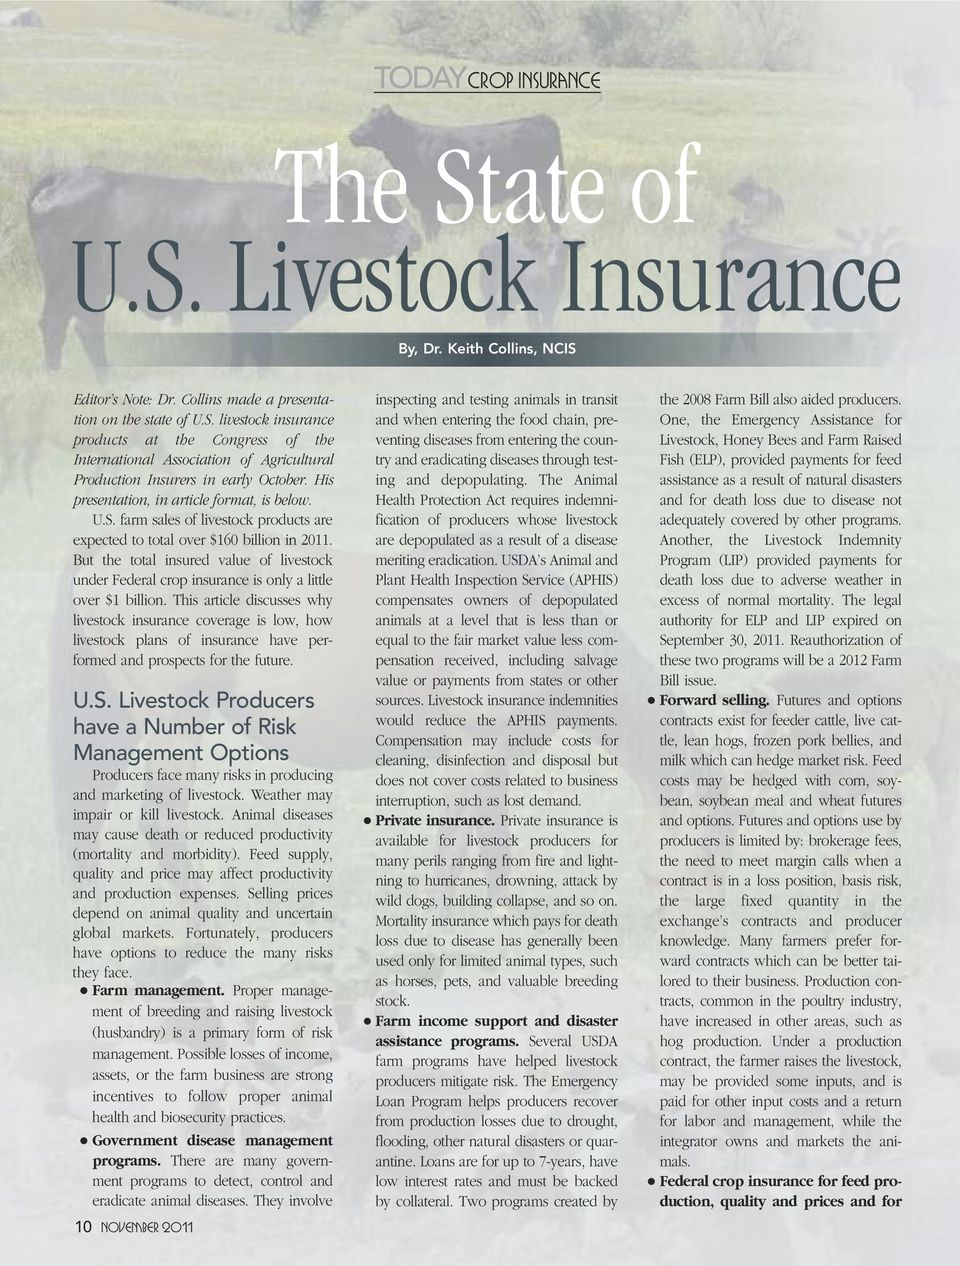 But the total insured value of livestock under Federal crop insurance is only a little over $1 billion.